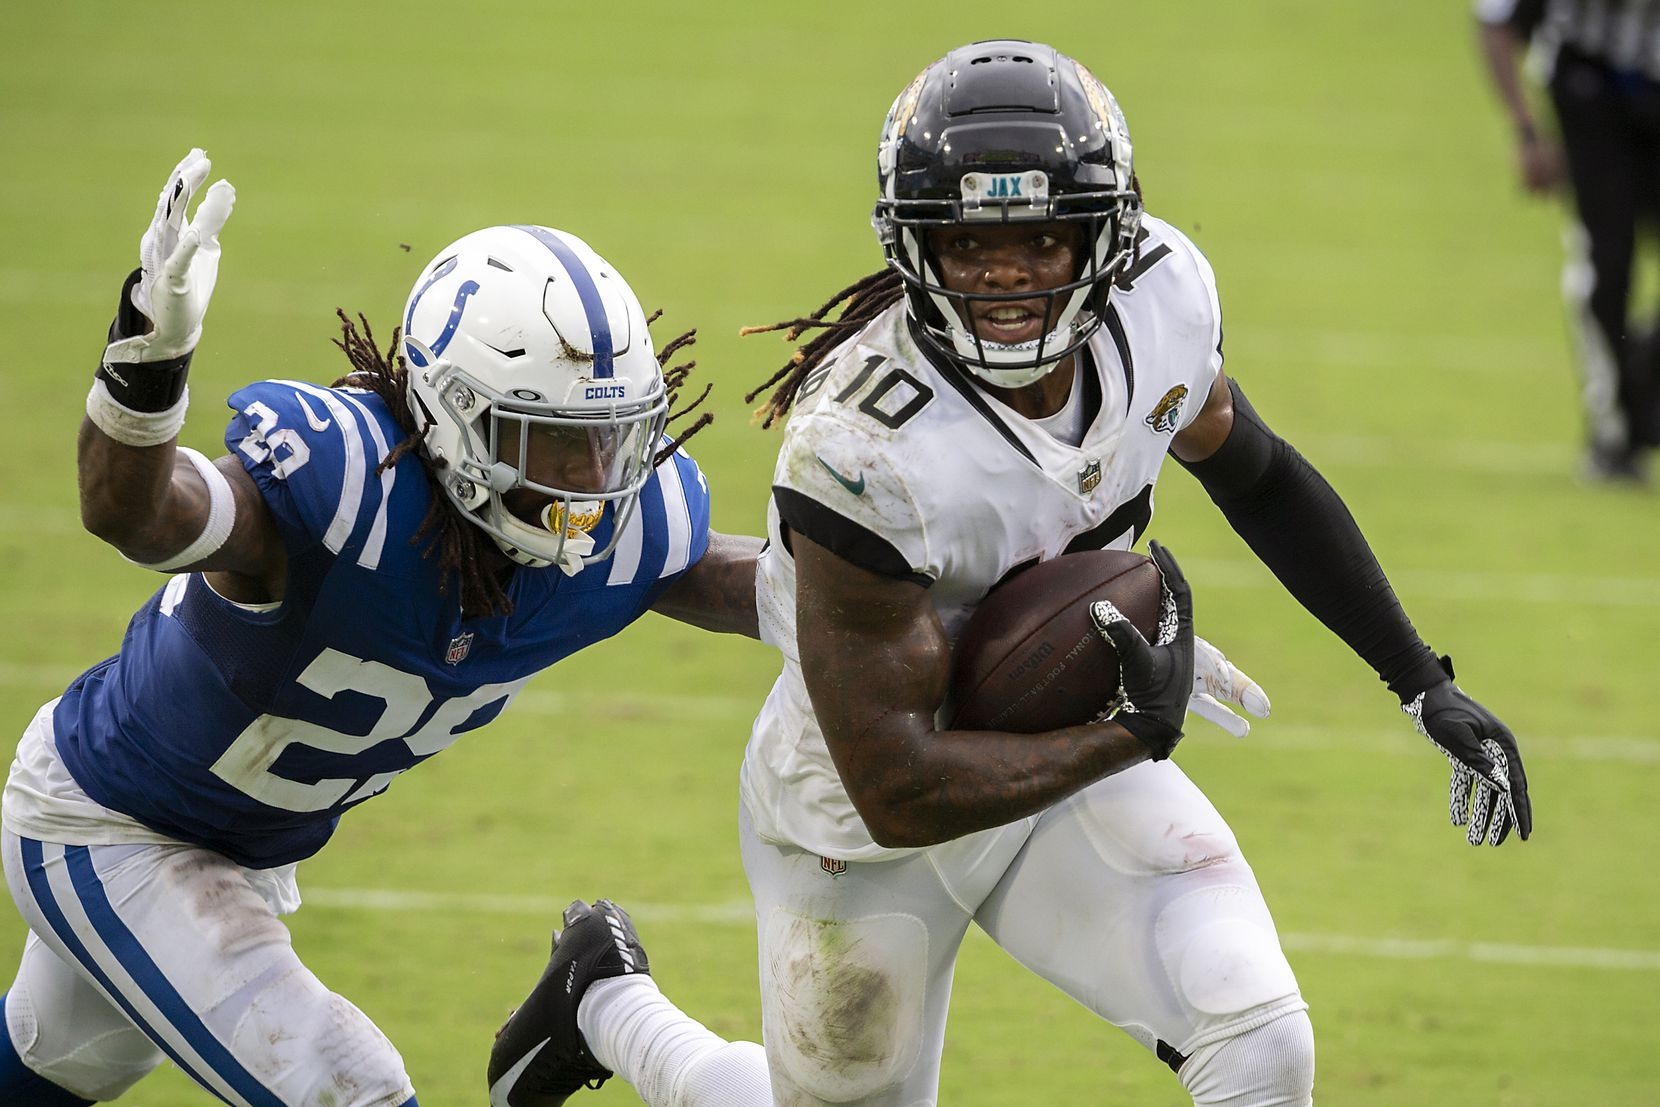 Jacksonville Jaguars wide receiver Laviska Shenault Jr. (10) scores a touchdown in front of Indianapolis Colts free safety Malik Hooker (29) during the first half of an NFL football game, Sunday, Sept. 13, 2020, in Jacksonville, Fla. (AP Photo/Stephen B. Morton)